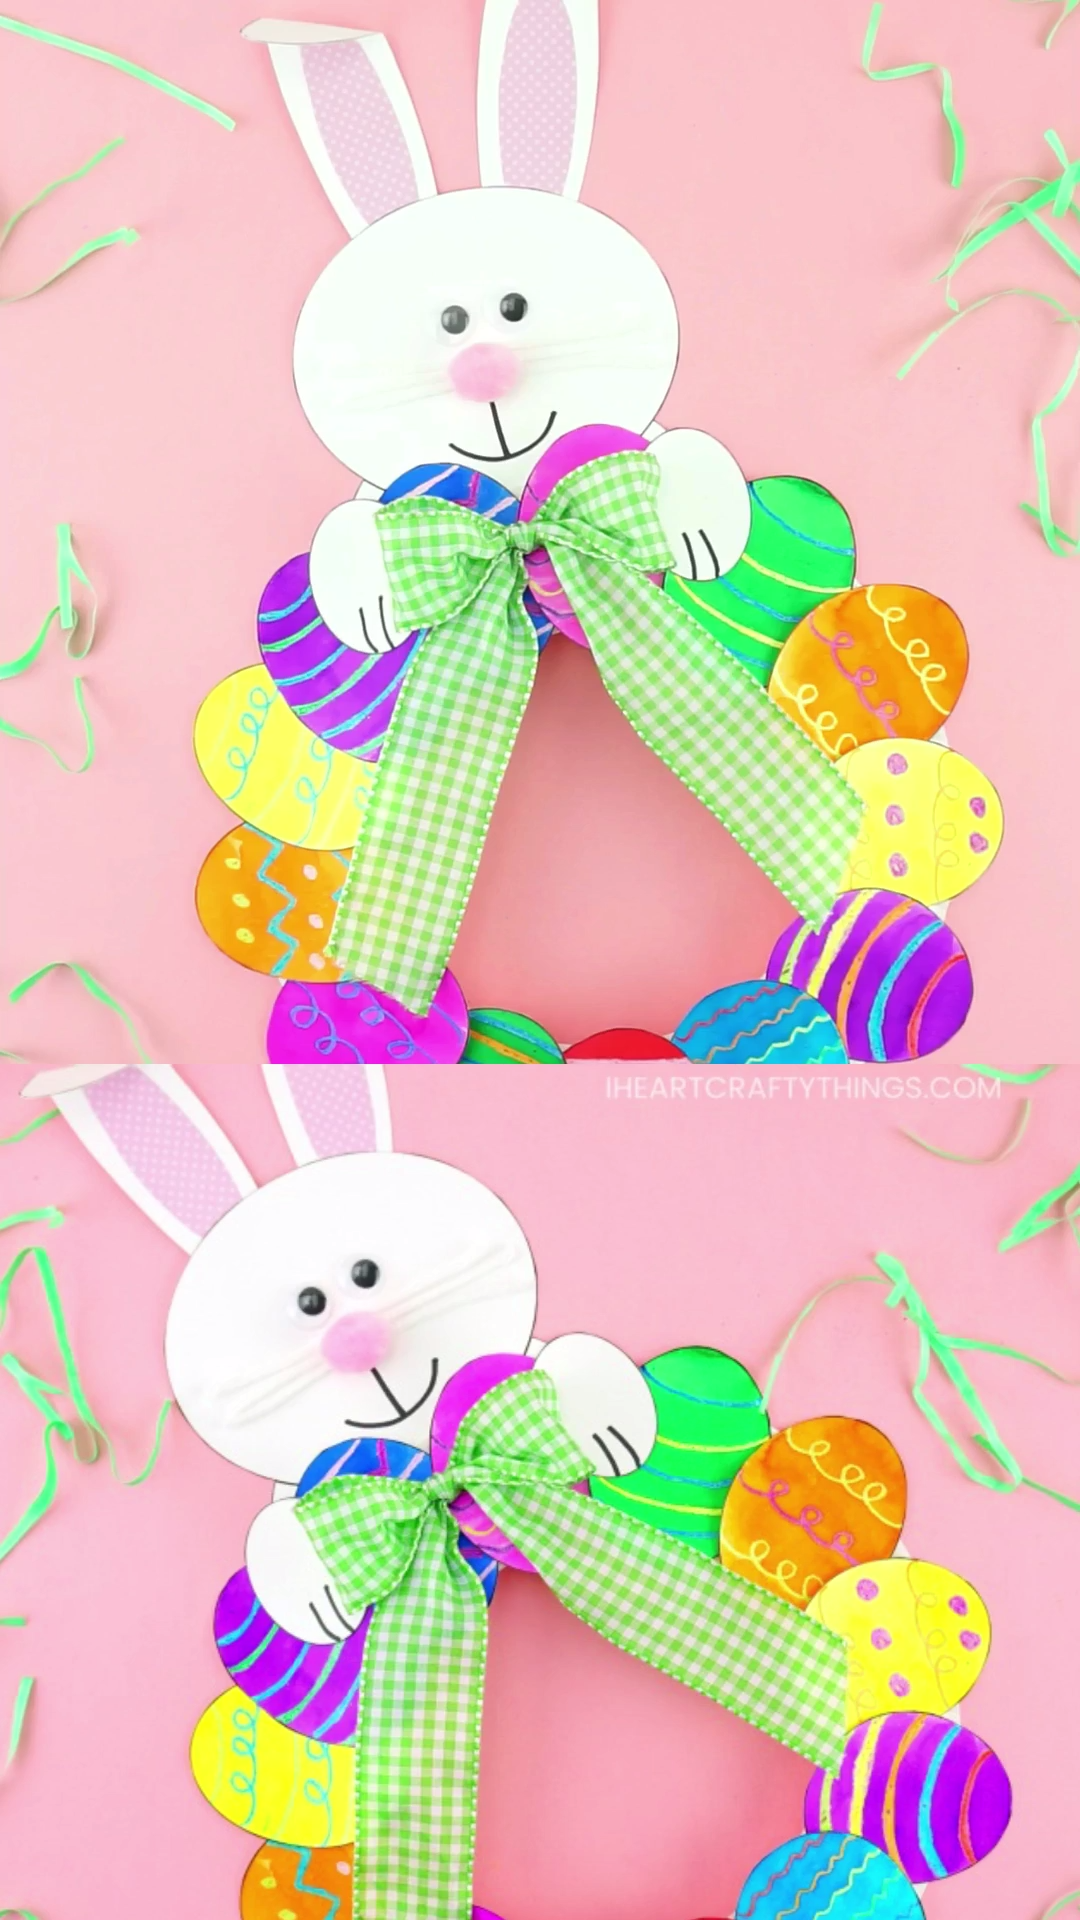 How to Make a Paper Plate Easter Egg Wreath - This colorful paper plate Easter Wreath is a simple and easy Easter Craft idea for kids of all ages to make. Cute DIY Easter decoration for home. #iheartcraftythings